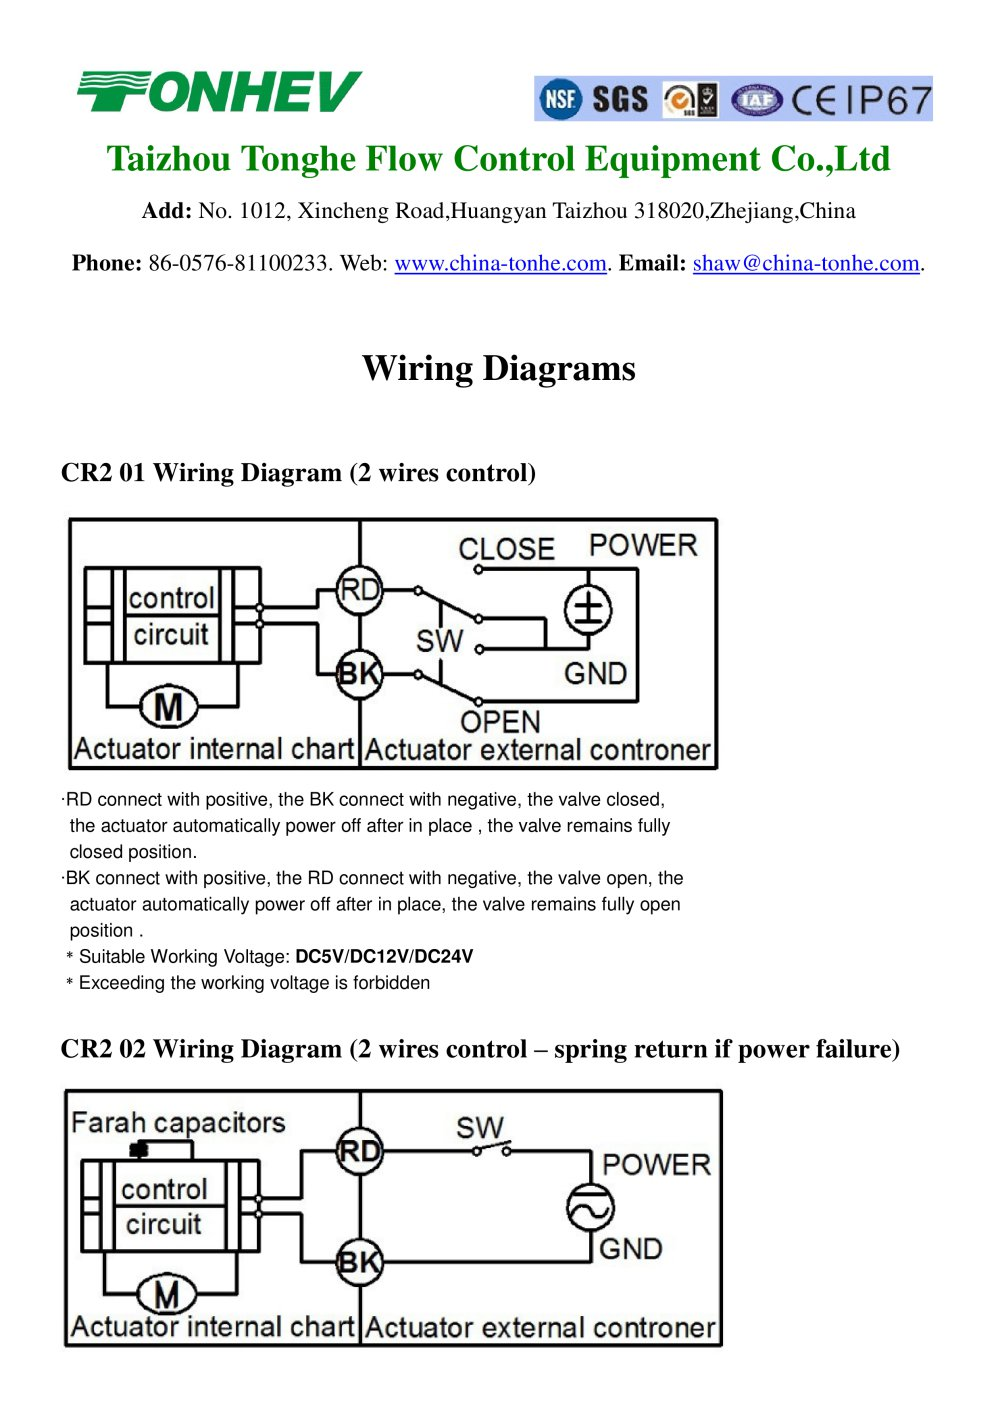 tonhe motorized valve wiring diagrams 514801_1b tonhe motorized valve wiring diagrams taizhou tonhe flow control honeywell motorized valve wiring diagram at alyssarenee.co